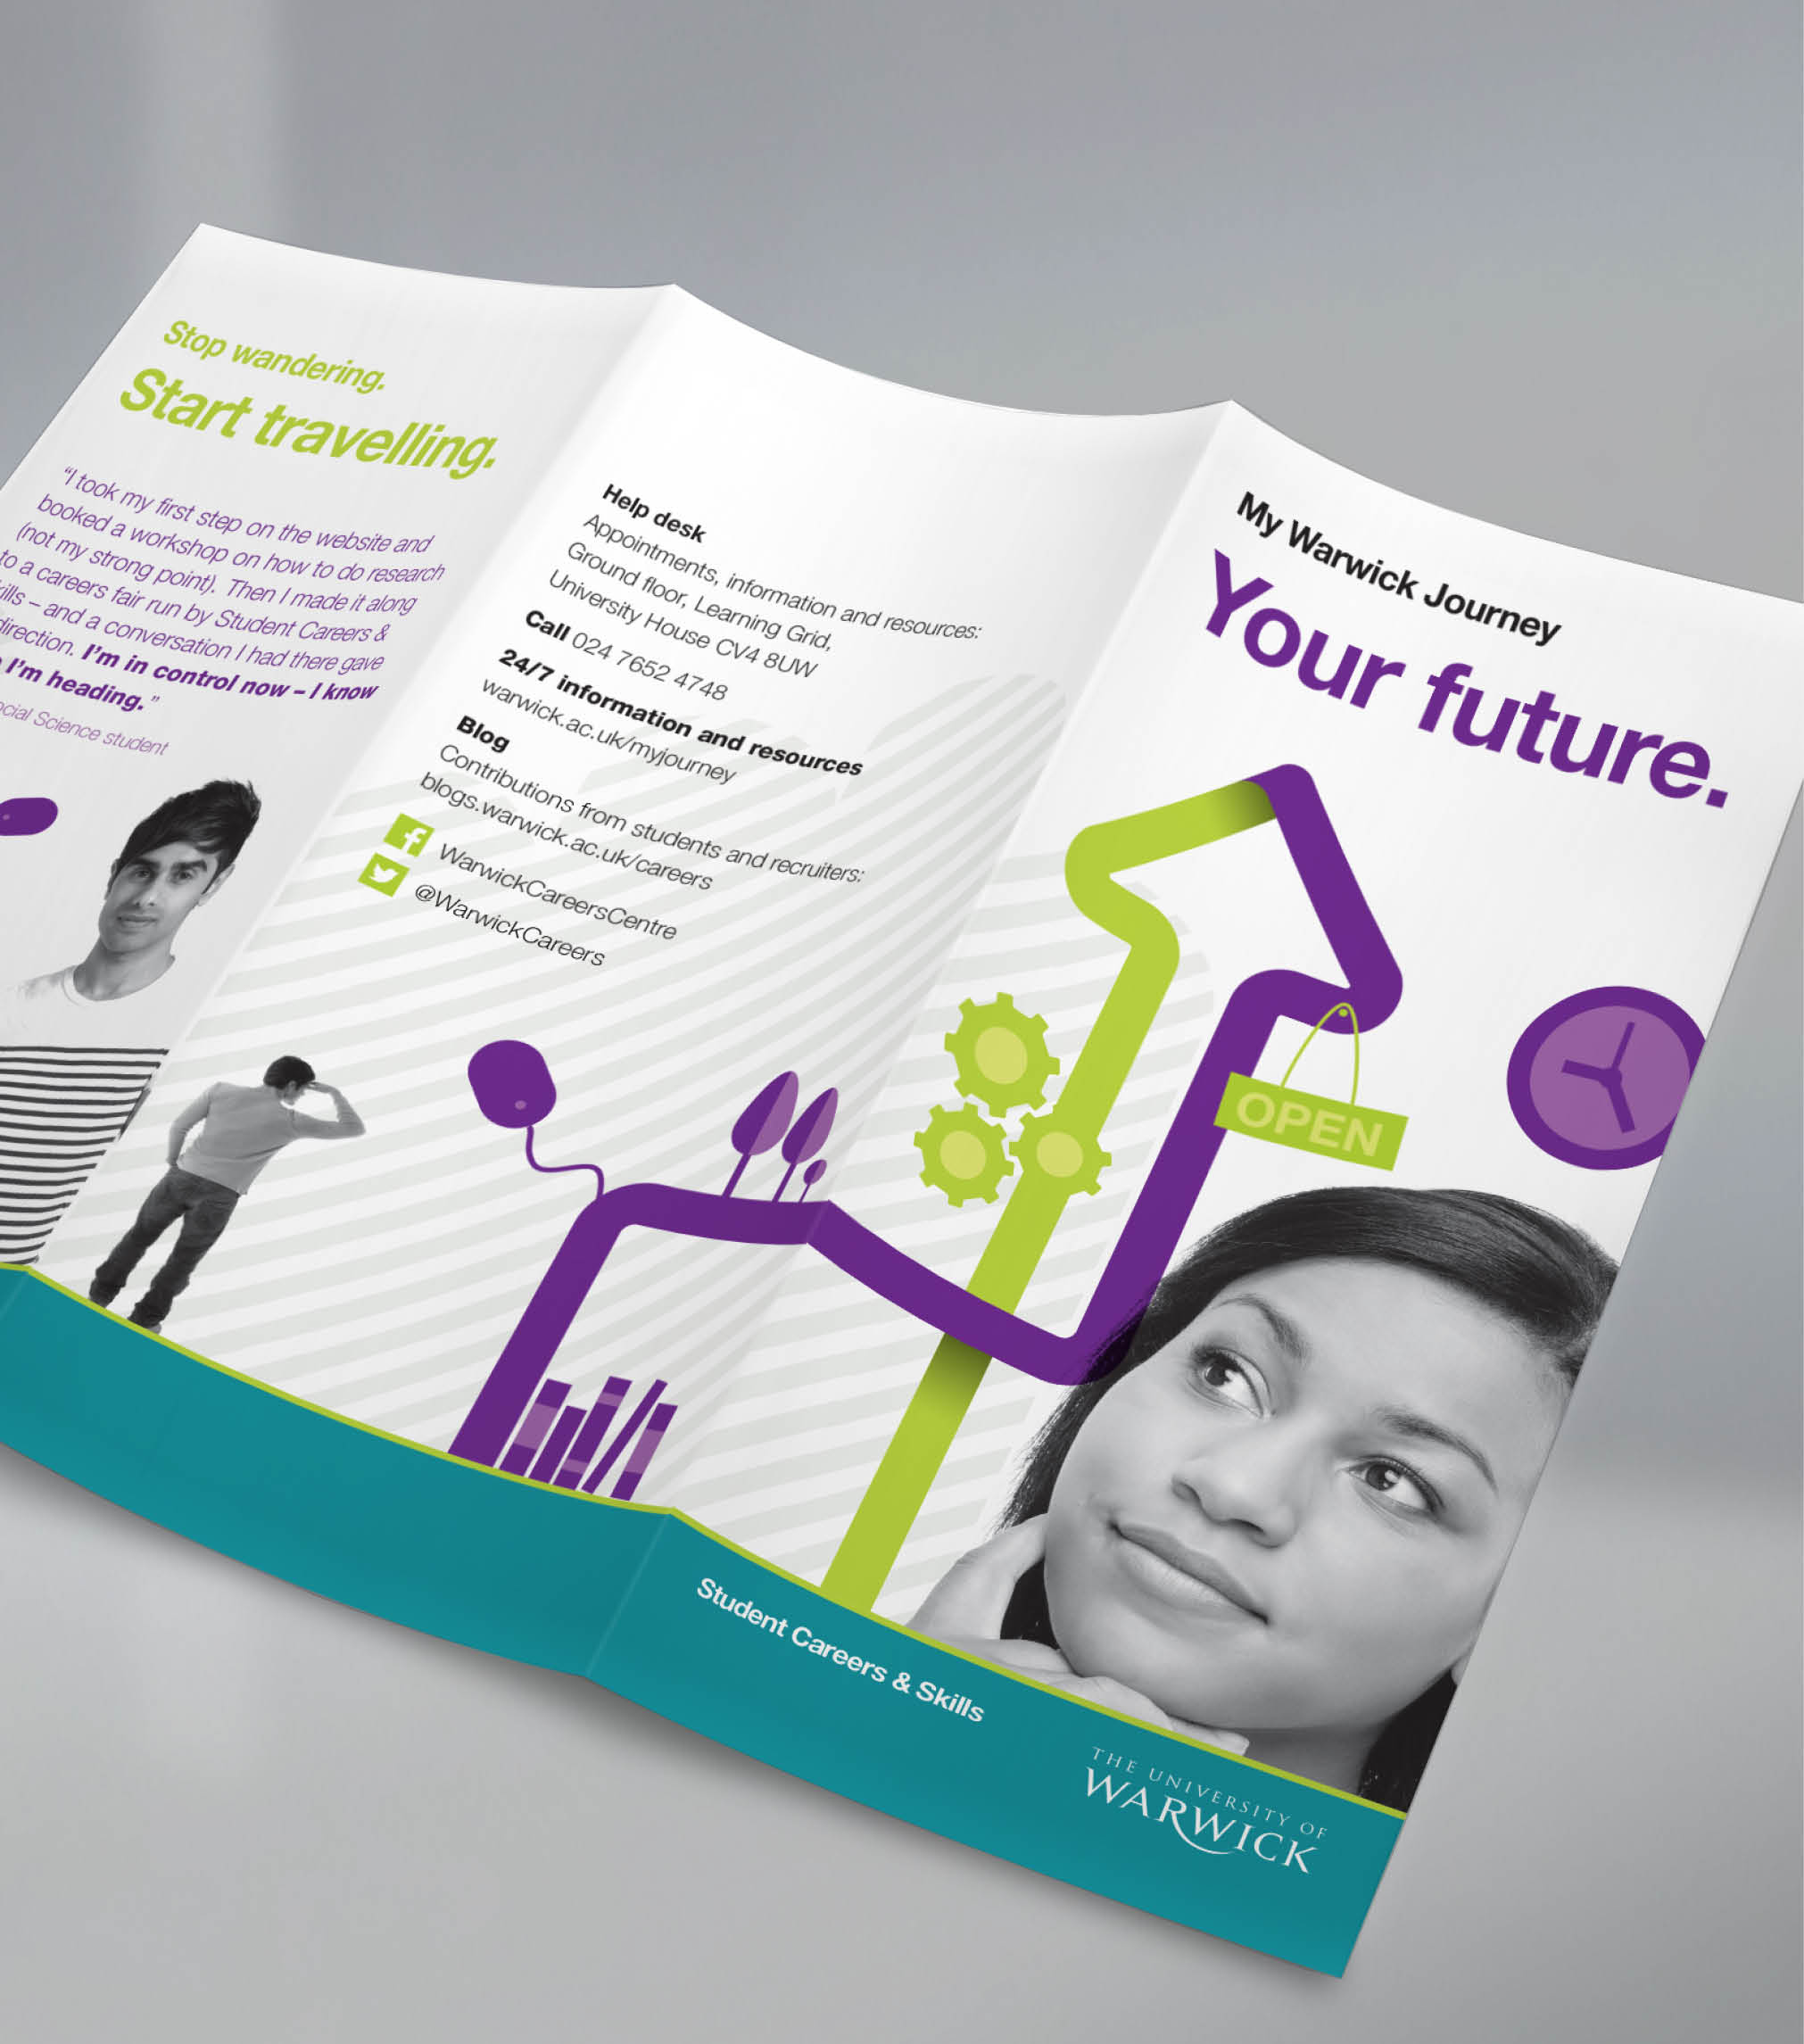 University of Warwick brand collateral for 'My Warwick Journey'